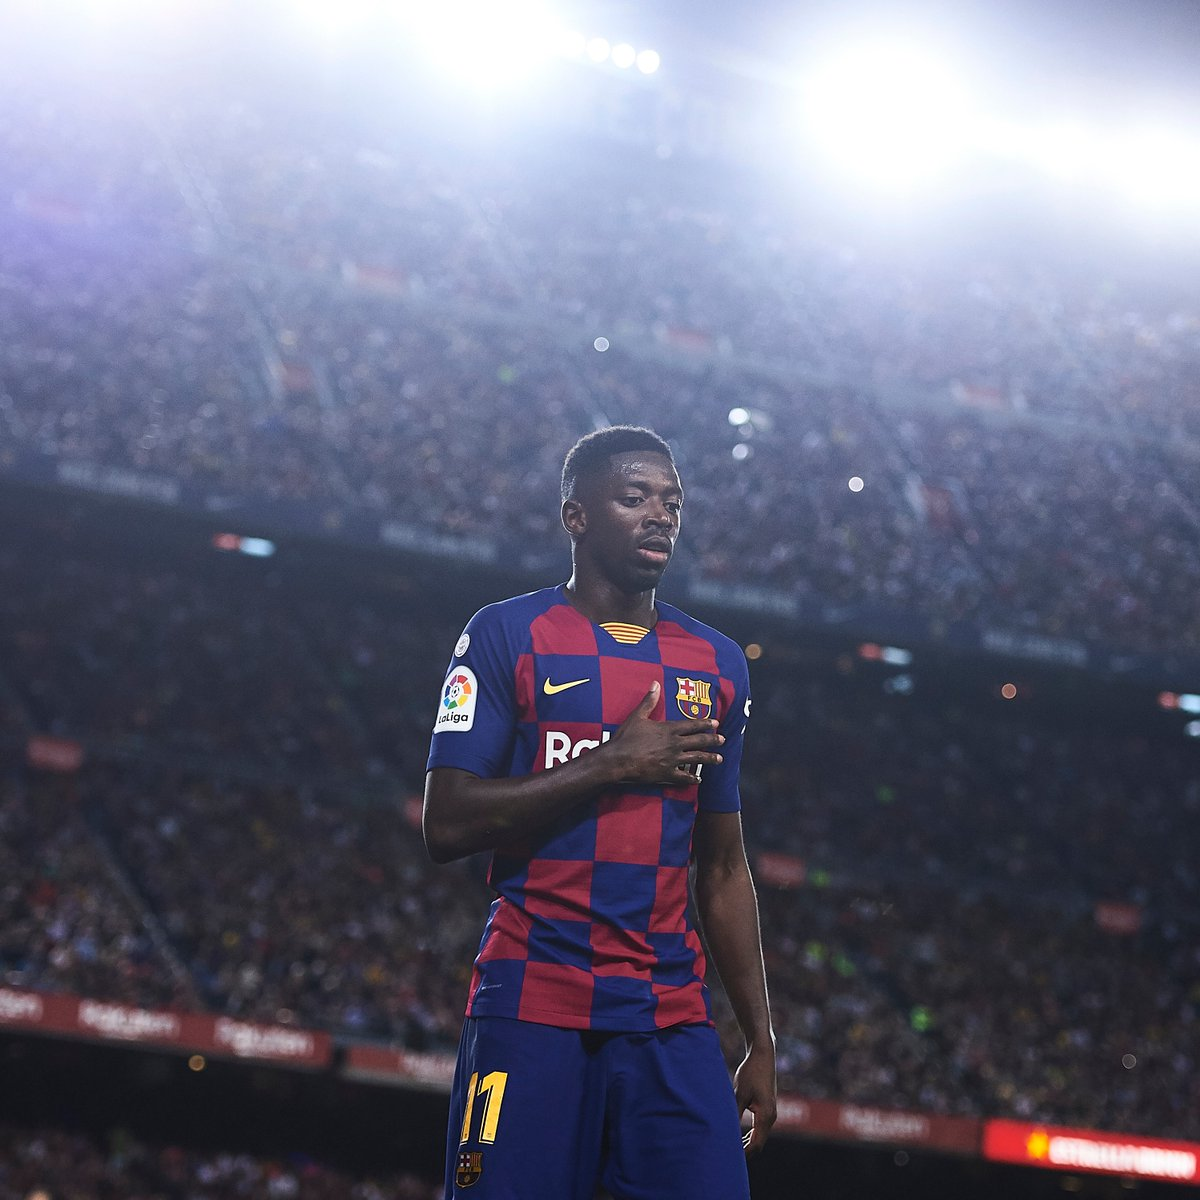 Goal On Twitter Liverpool Will Consider A Move For Barcelona S Ousmane Dembele If They Cannot Sign Timo Werner According To Mundo Deportivo Https T Co Idrwfthgsj